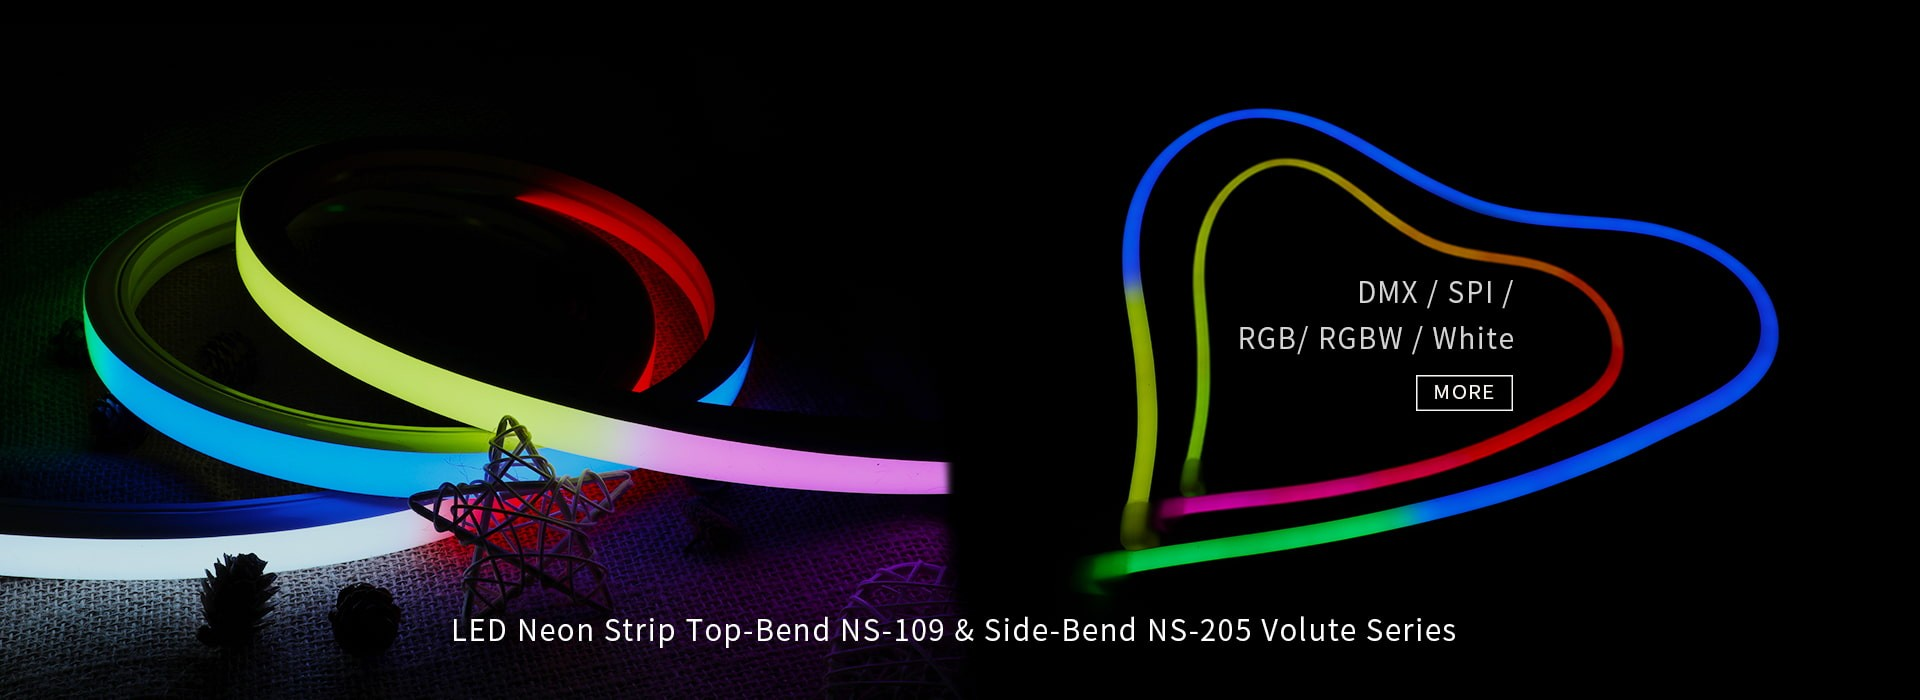 Dải đèn LED Neon Series Top-Bend NS-109 & Side-Bend NS-205 Volute